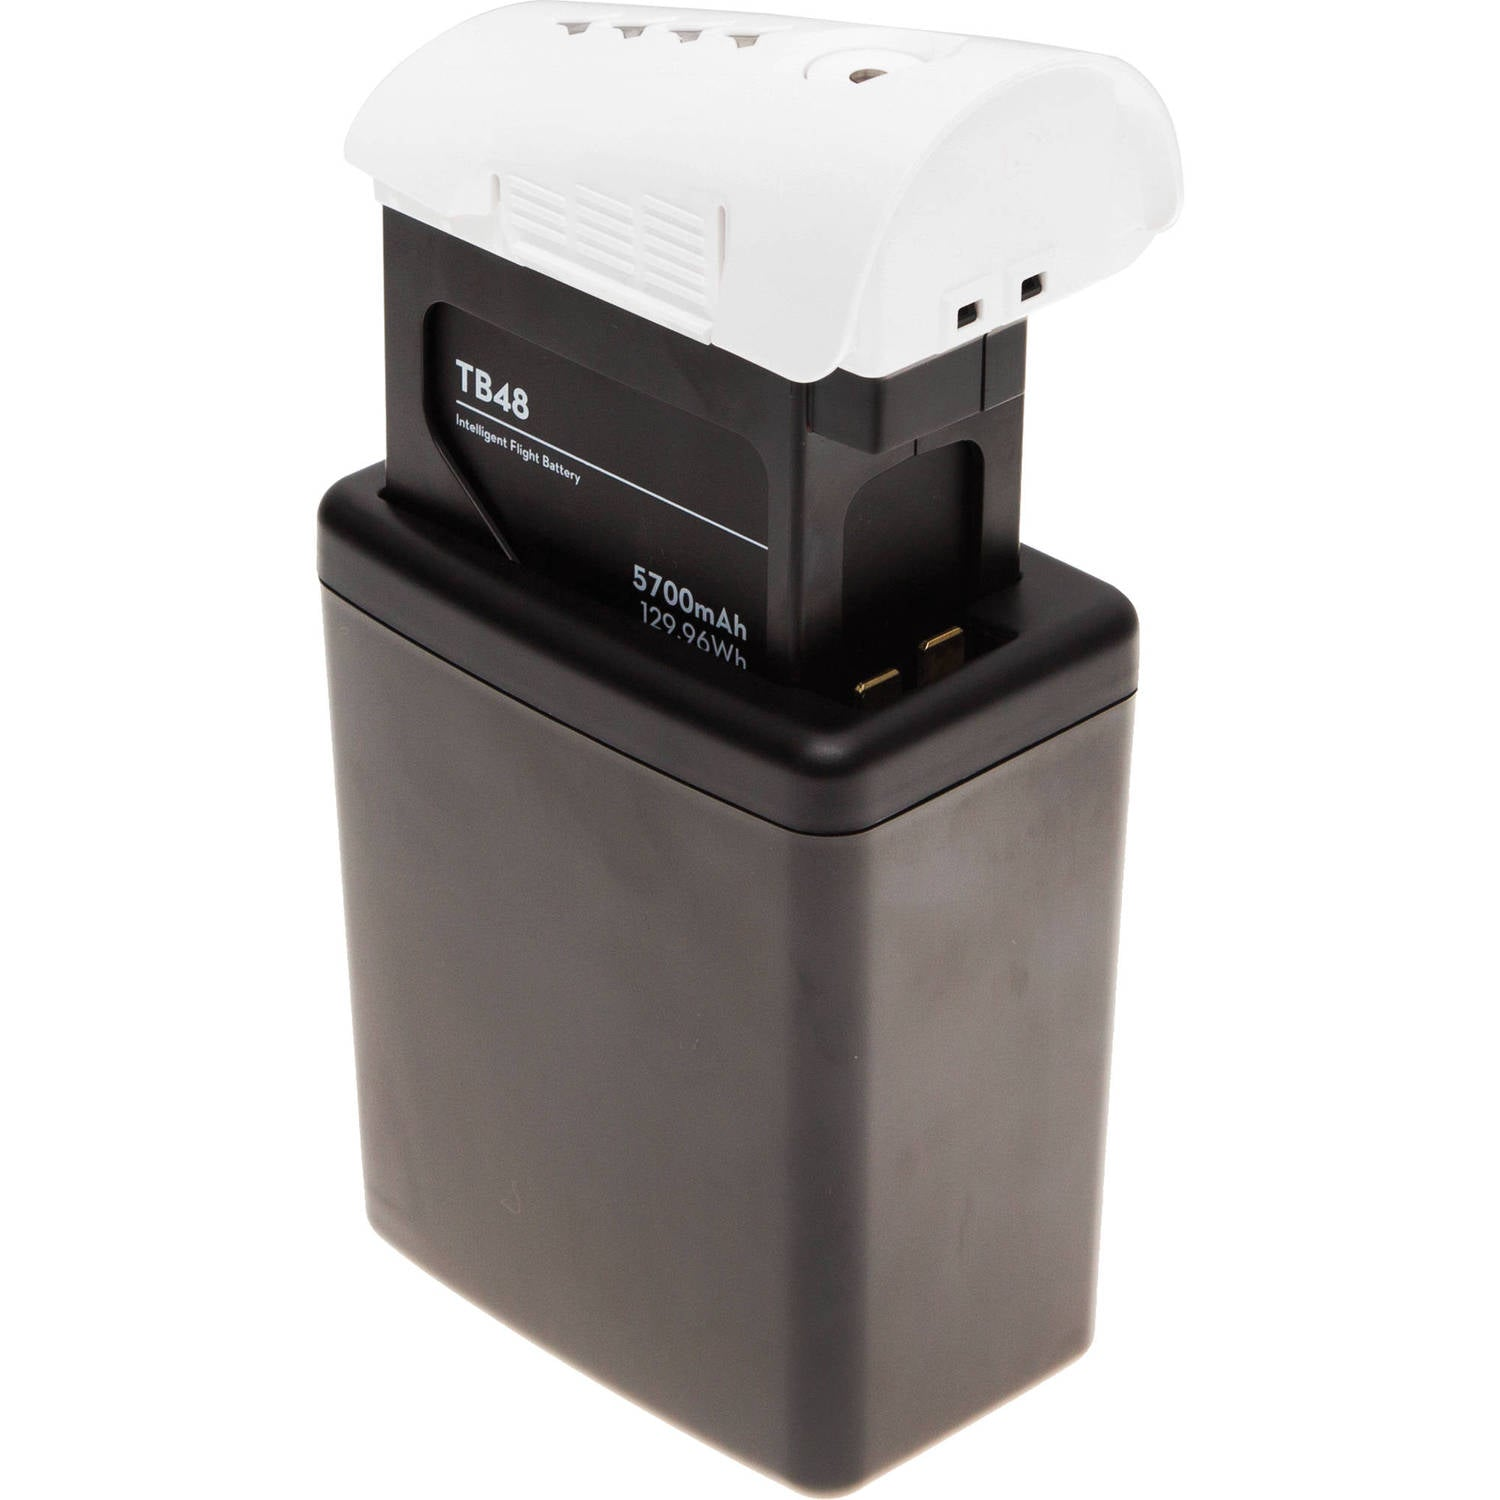 DJI Battery Heater for Inspire 1 and Matrice Series (TB47/TB48)